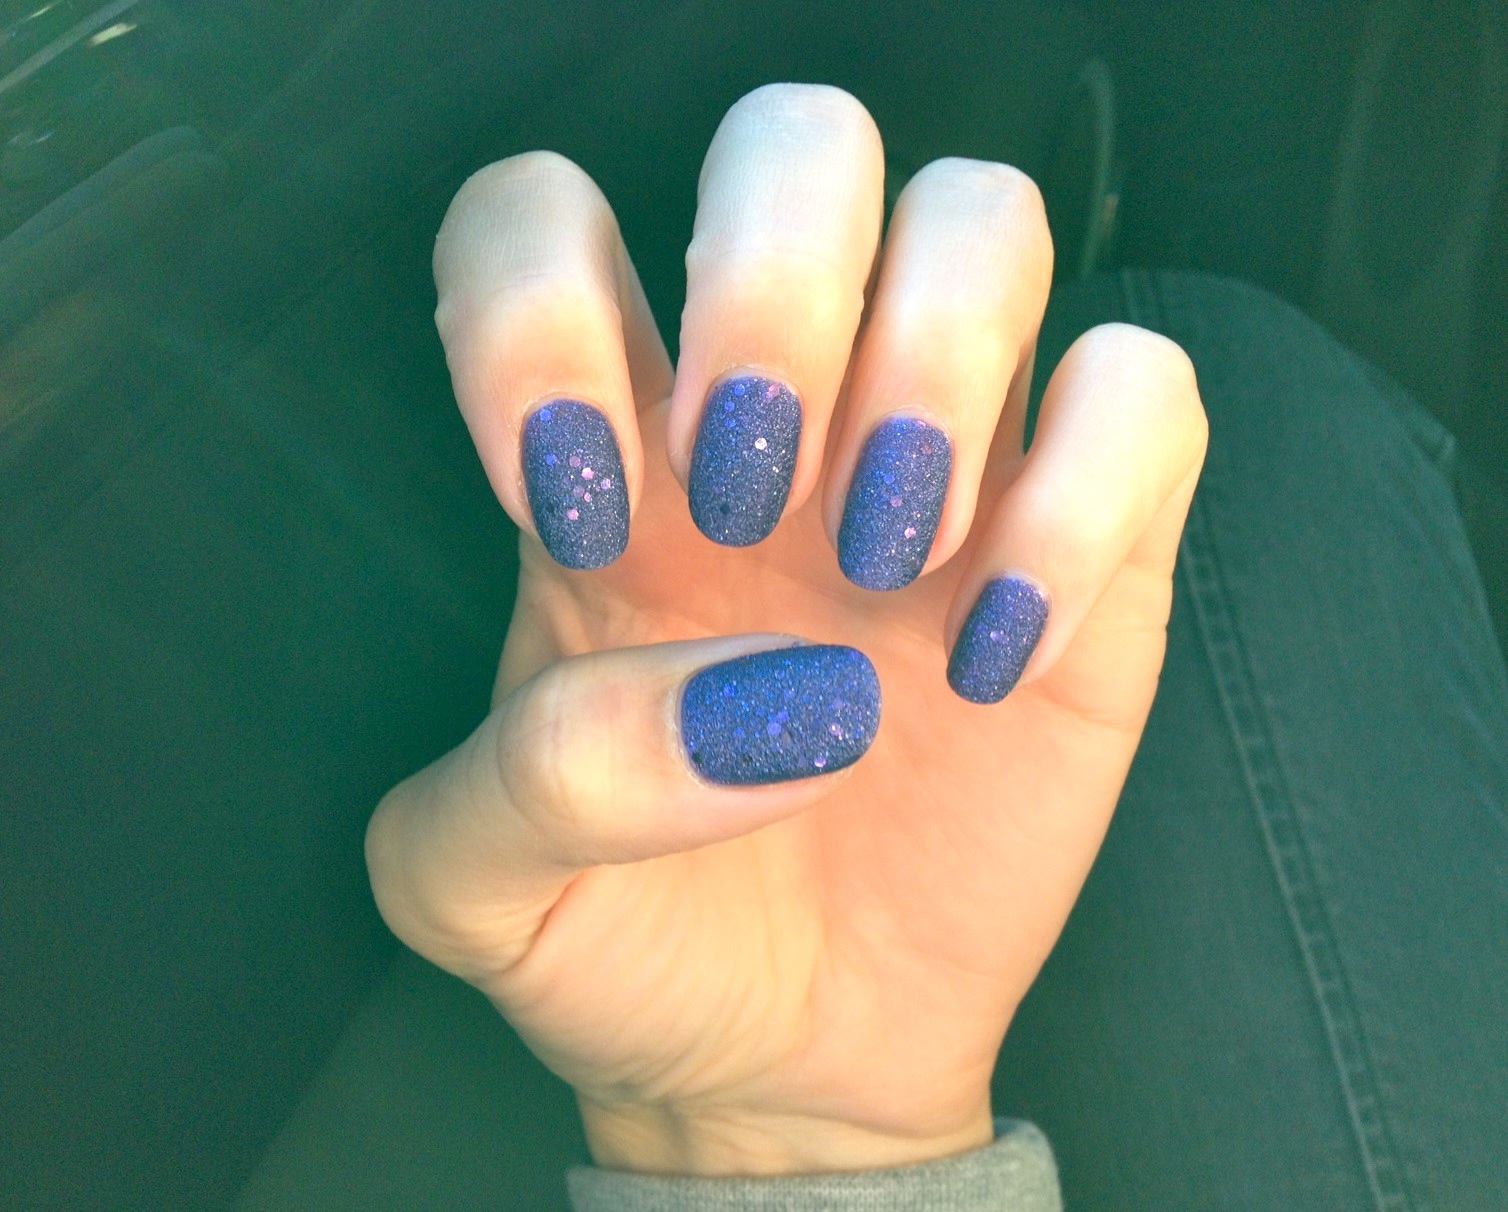 OPI_liquid sand_indirect